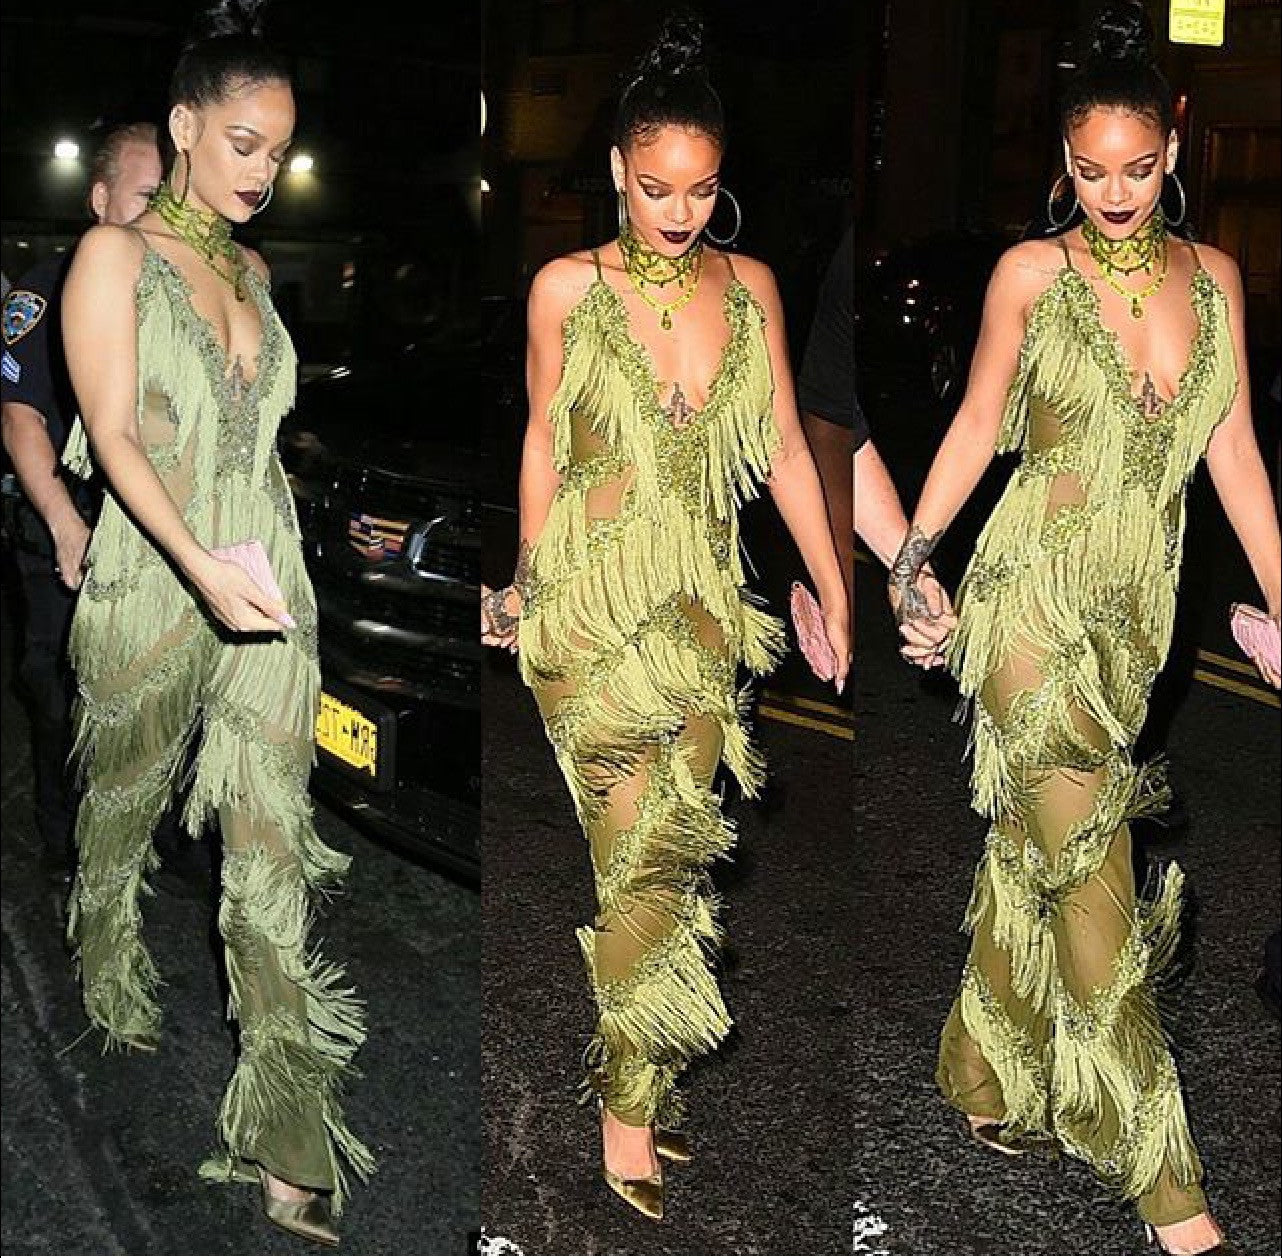 Abdul Sall of Limpasse Kills RIHANNA VMA'S AFTER PARTY OUTFIT